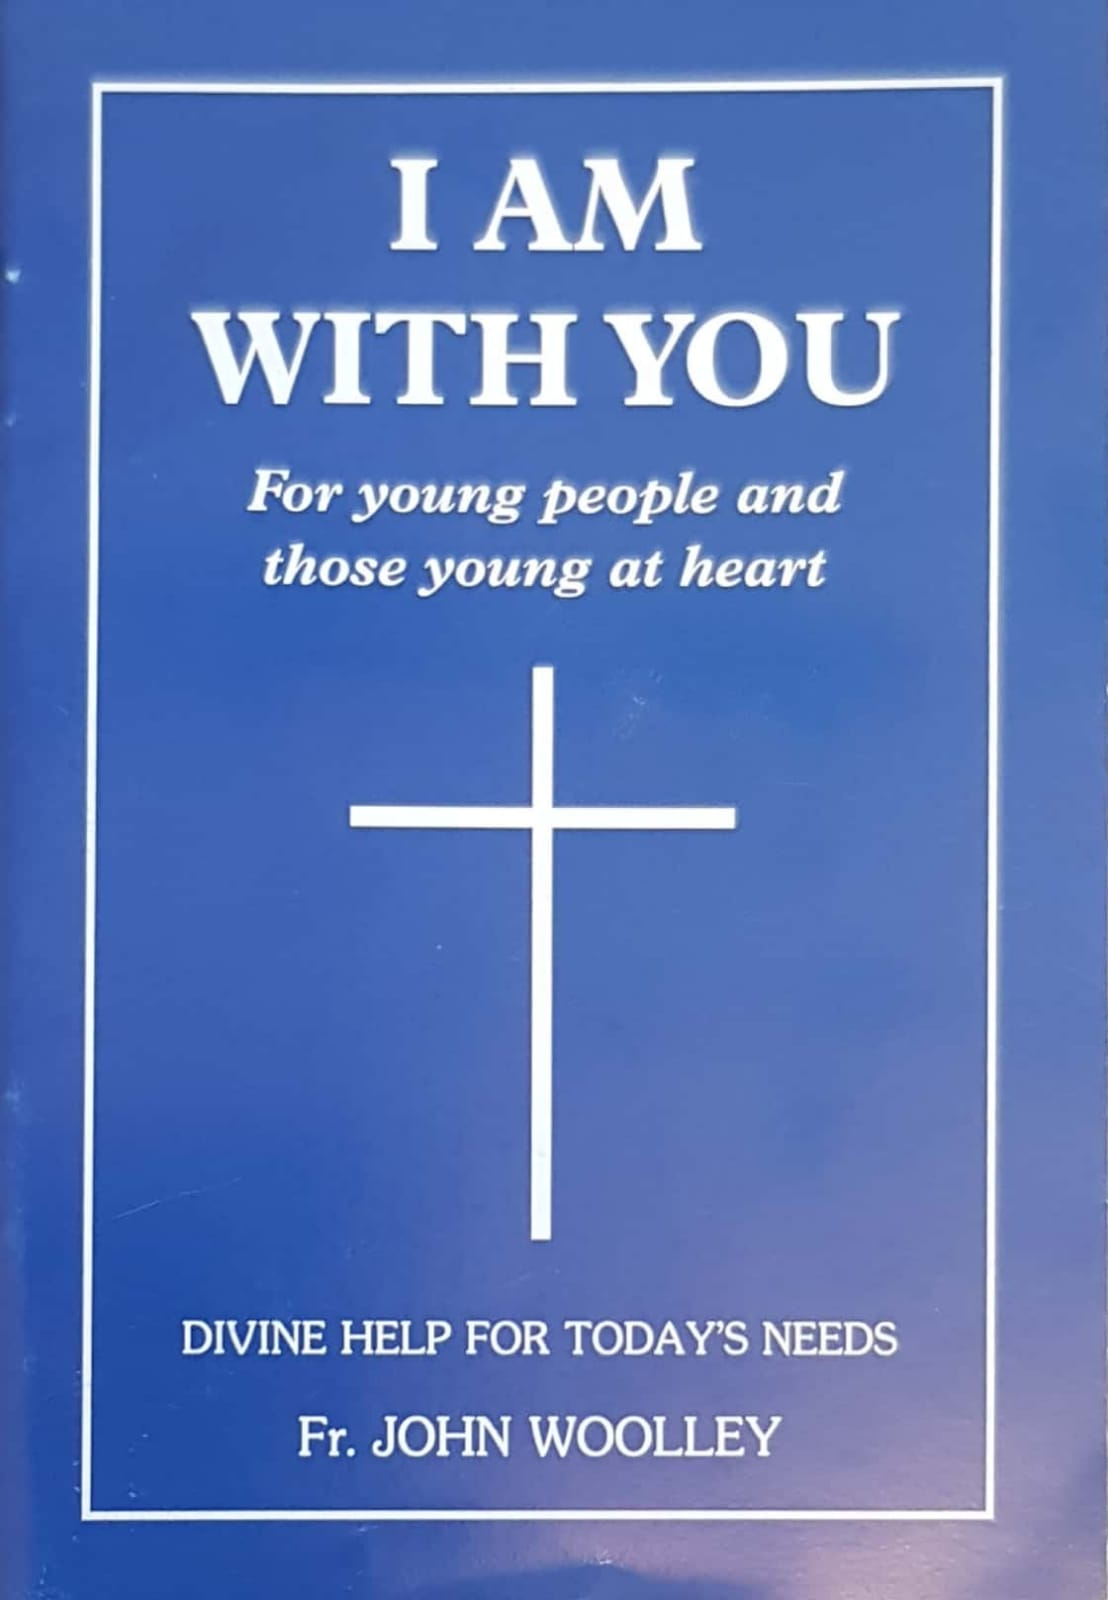 I Am With You - Free Young People Mini Edition